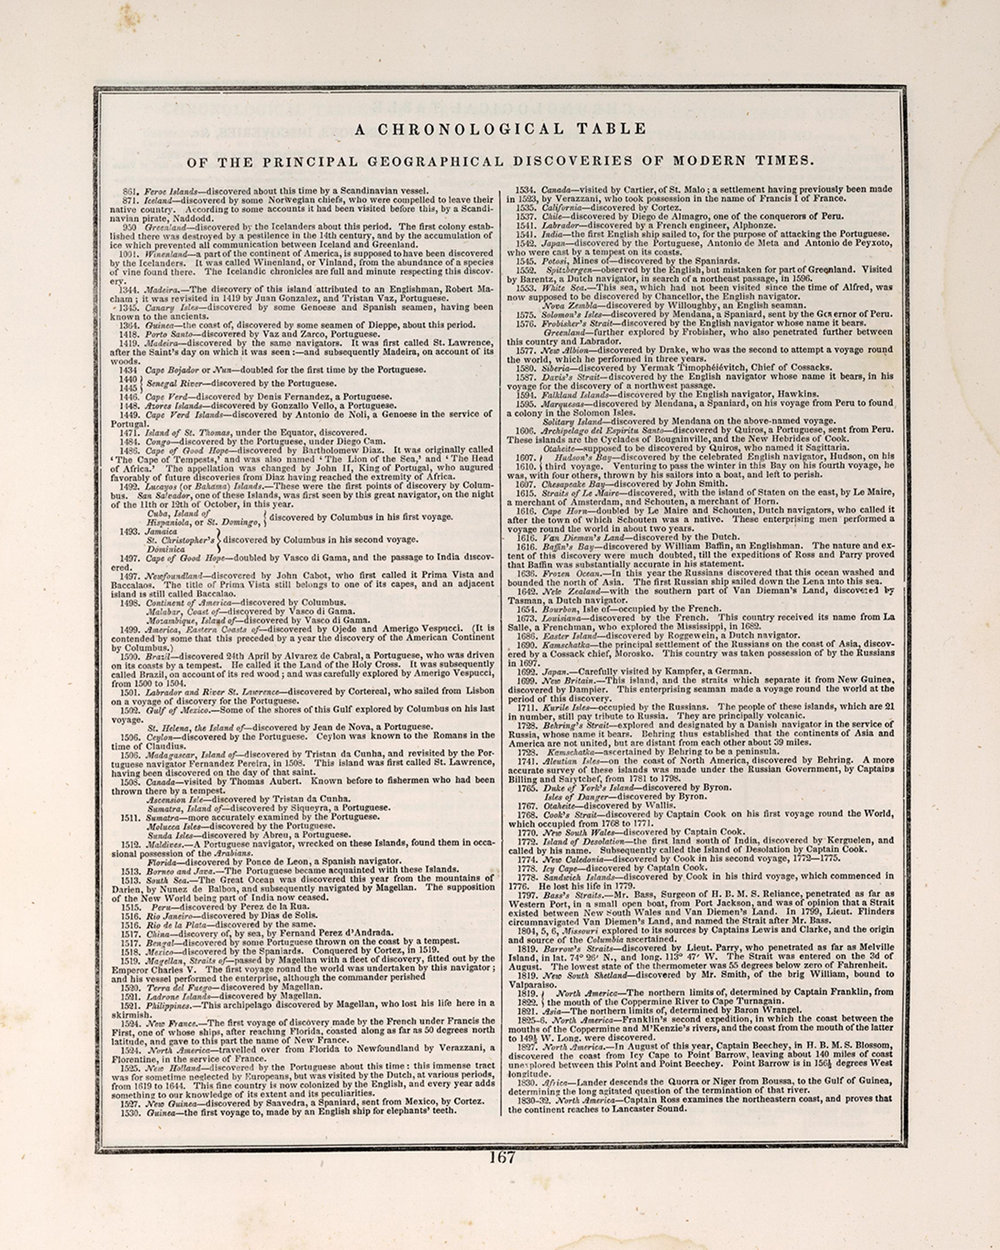 A Chronological Table of the Principal Geographical Discoveries of Modern Times